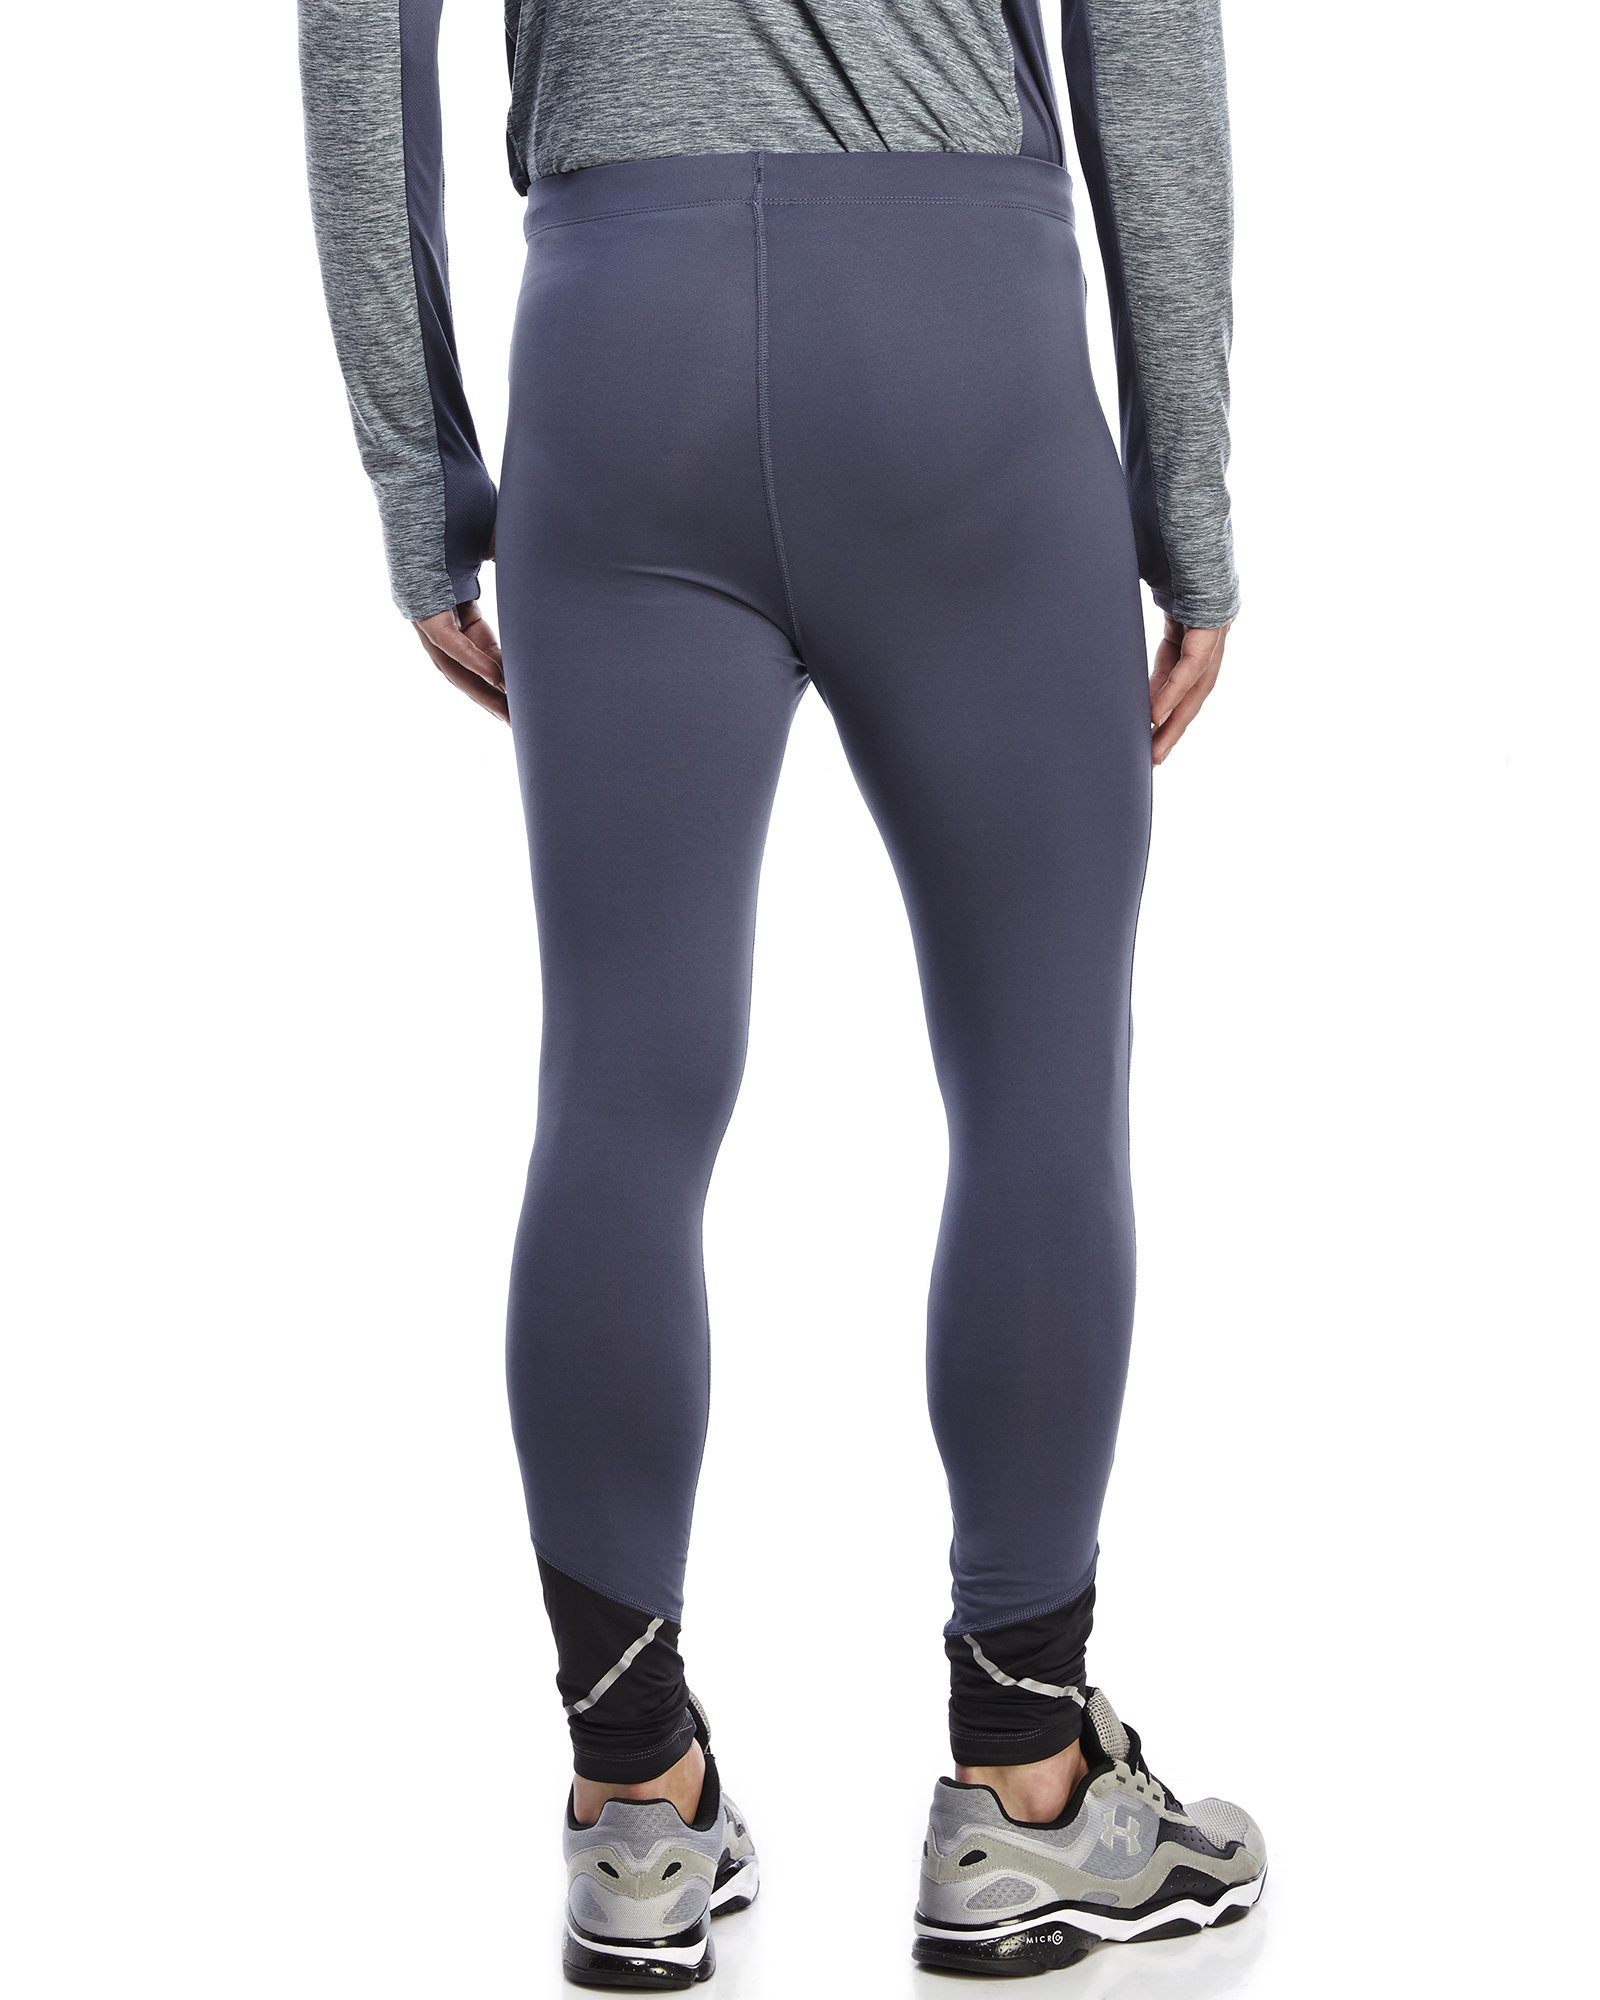 7d4c8086ce1da New Balance Impact Running Tights in Blue for Men - Lyst